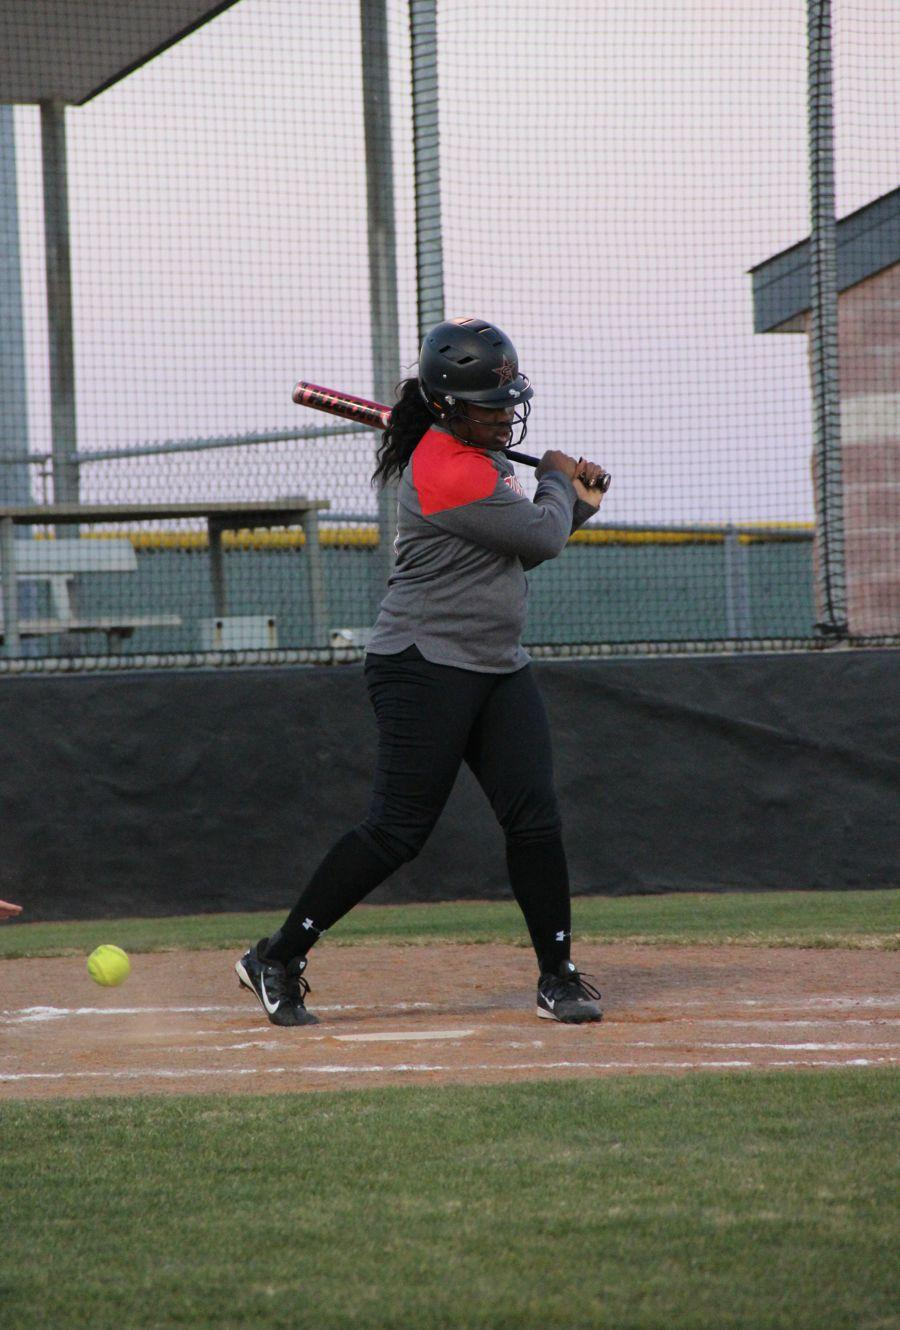 Coppell+High+School+junior+Adaqu+Ngwu+bats+during+the+sixth+inning+of+the+scrimmage+on+Monday.+Coppell+JV+II+scrimmaged+against+Allen+at+the+Coppell+ISD+baseball%2Fsoftball+complex.%0A